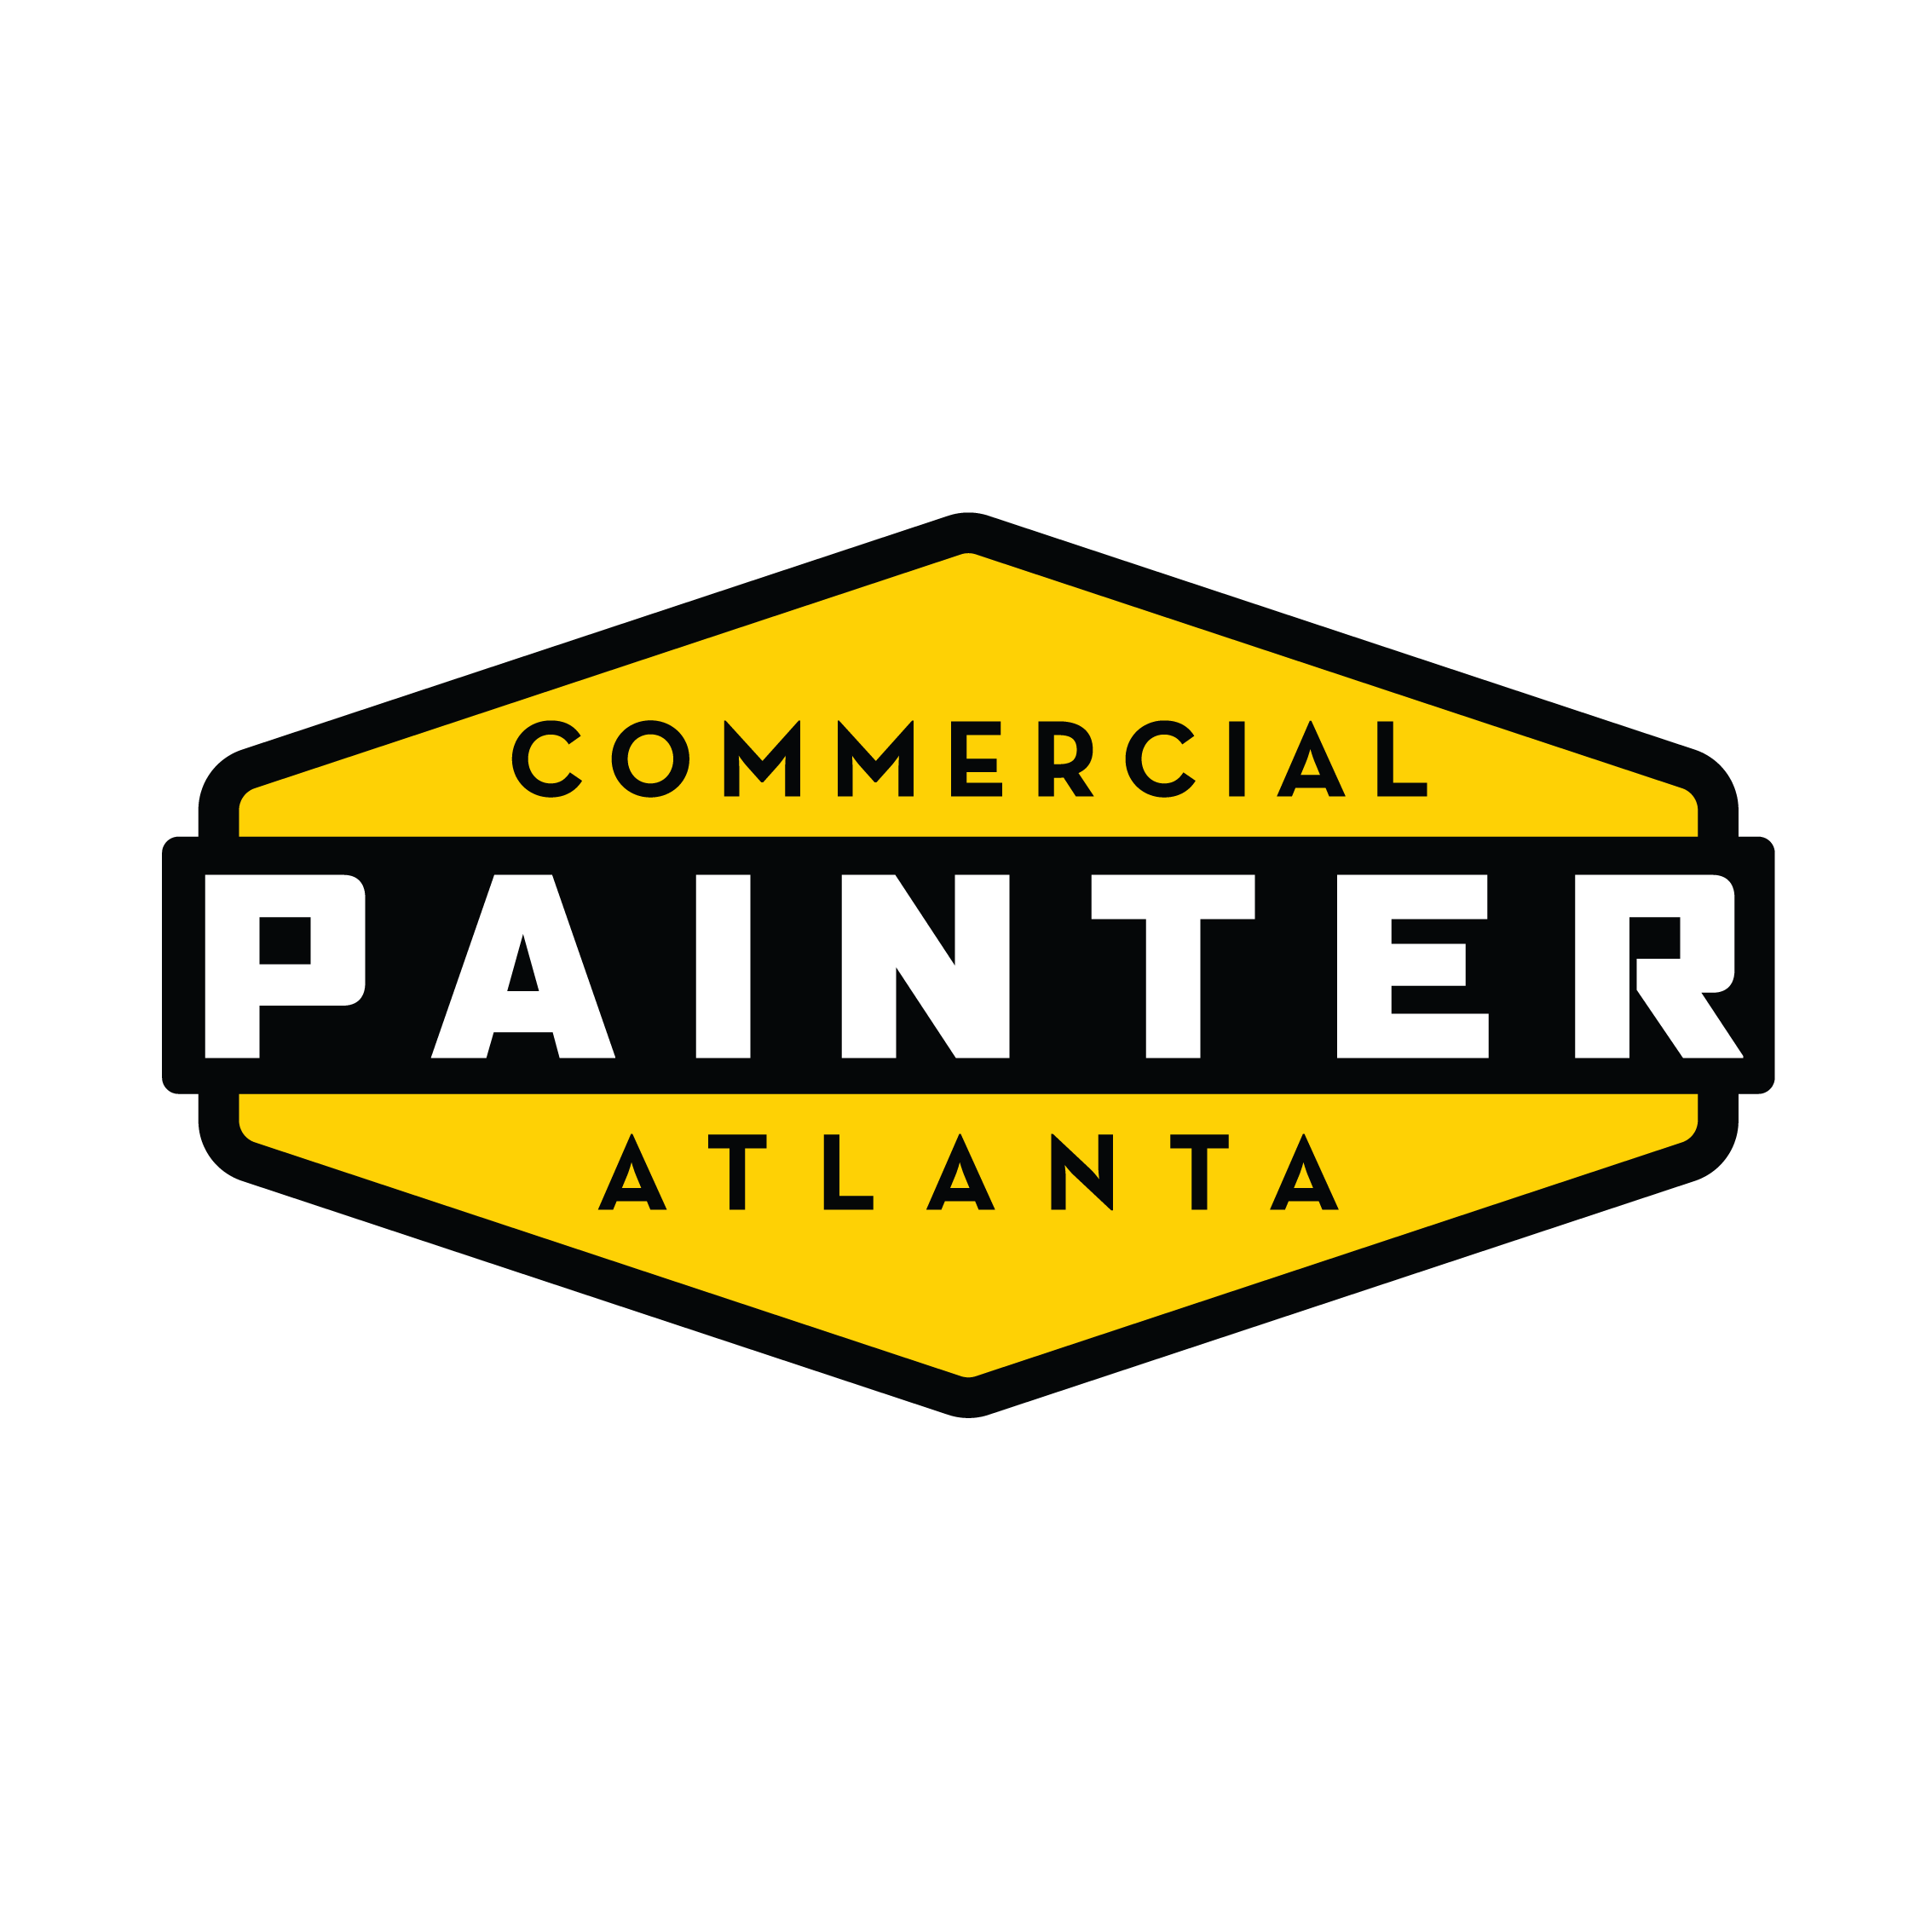 Electro Painter Atlanta LLC